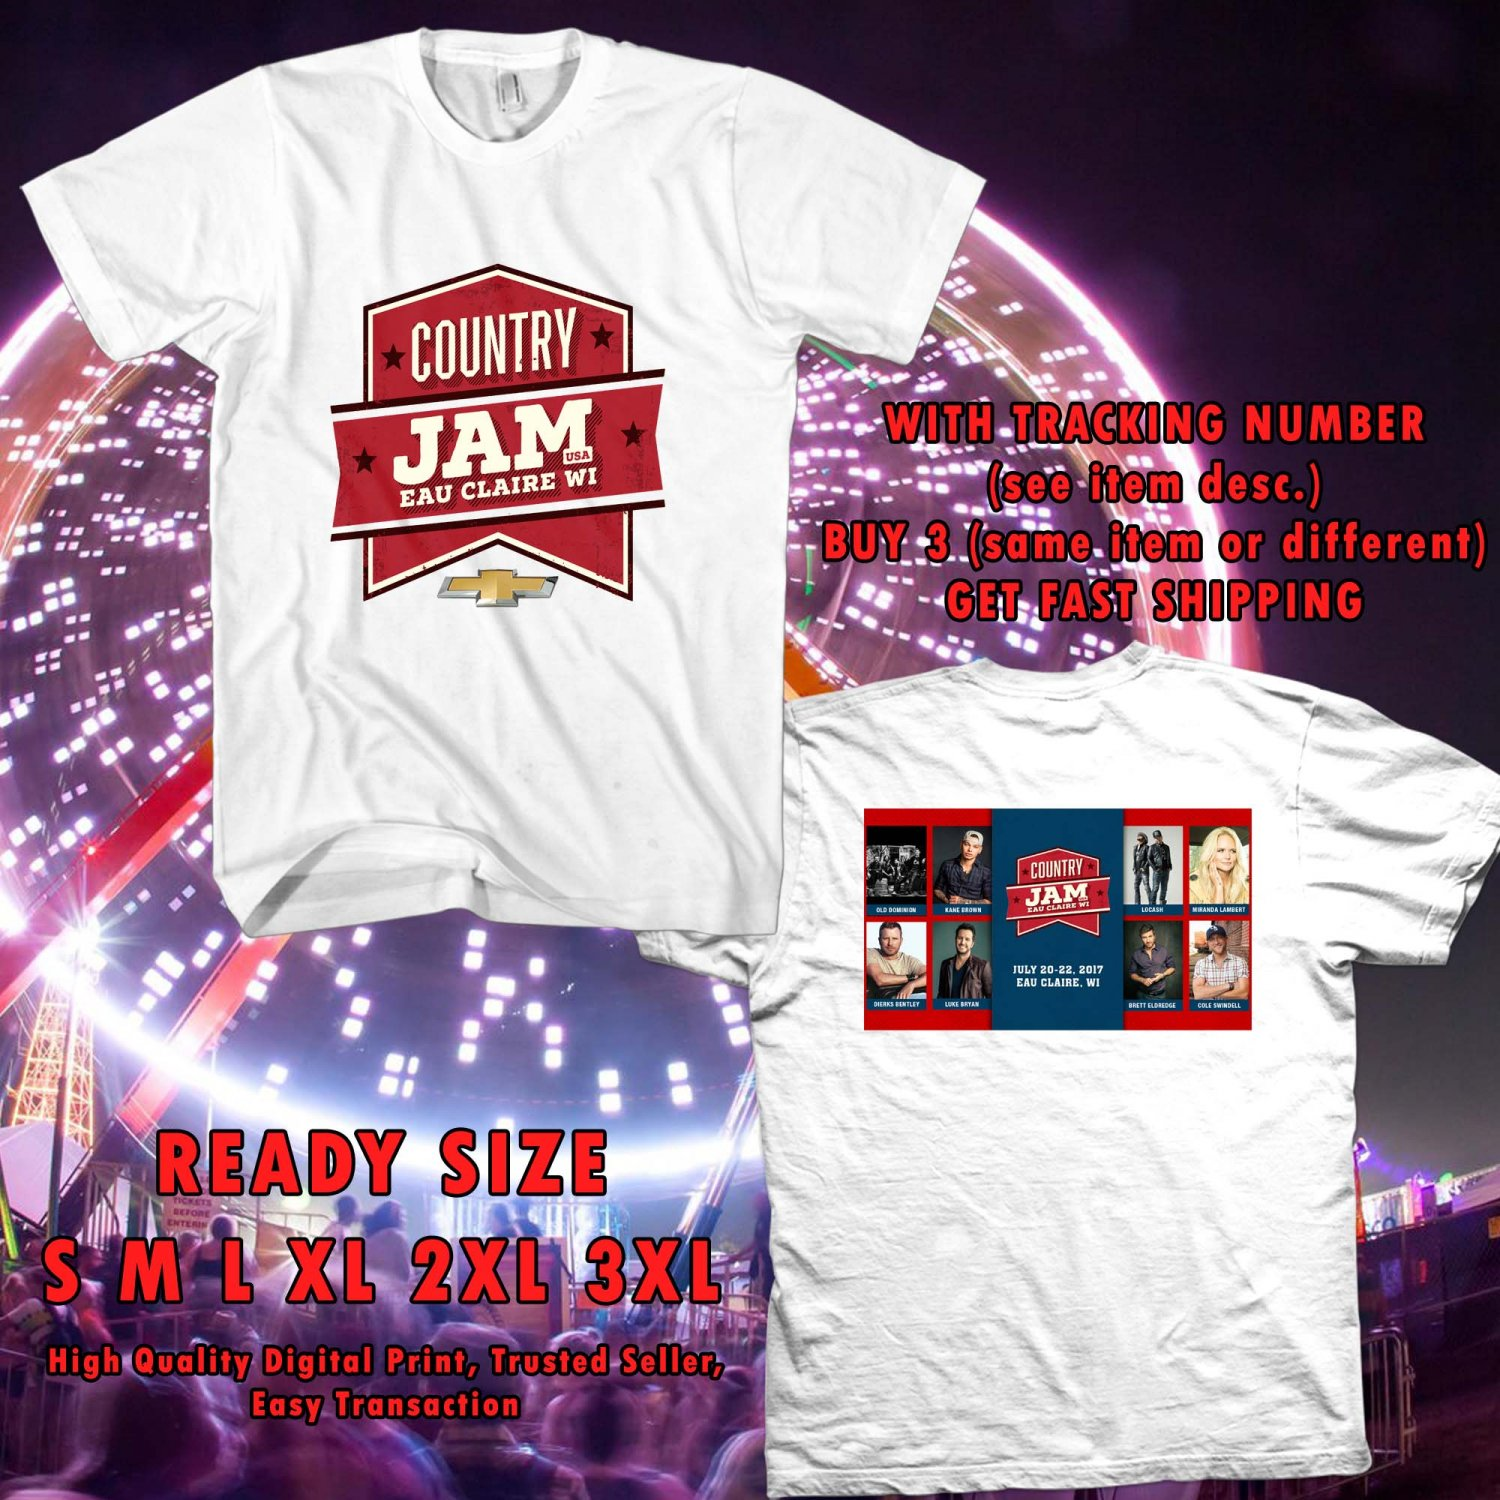 HITS COUNTRY JAM WISCONSIN FESTIVAL JUN 2017 WHITE TEE'S 2SIDE MAN WOMEN ASTR